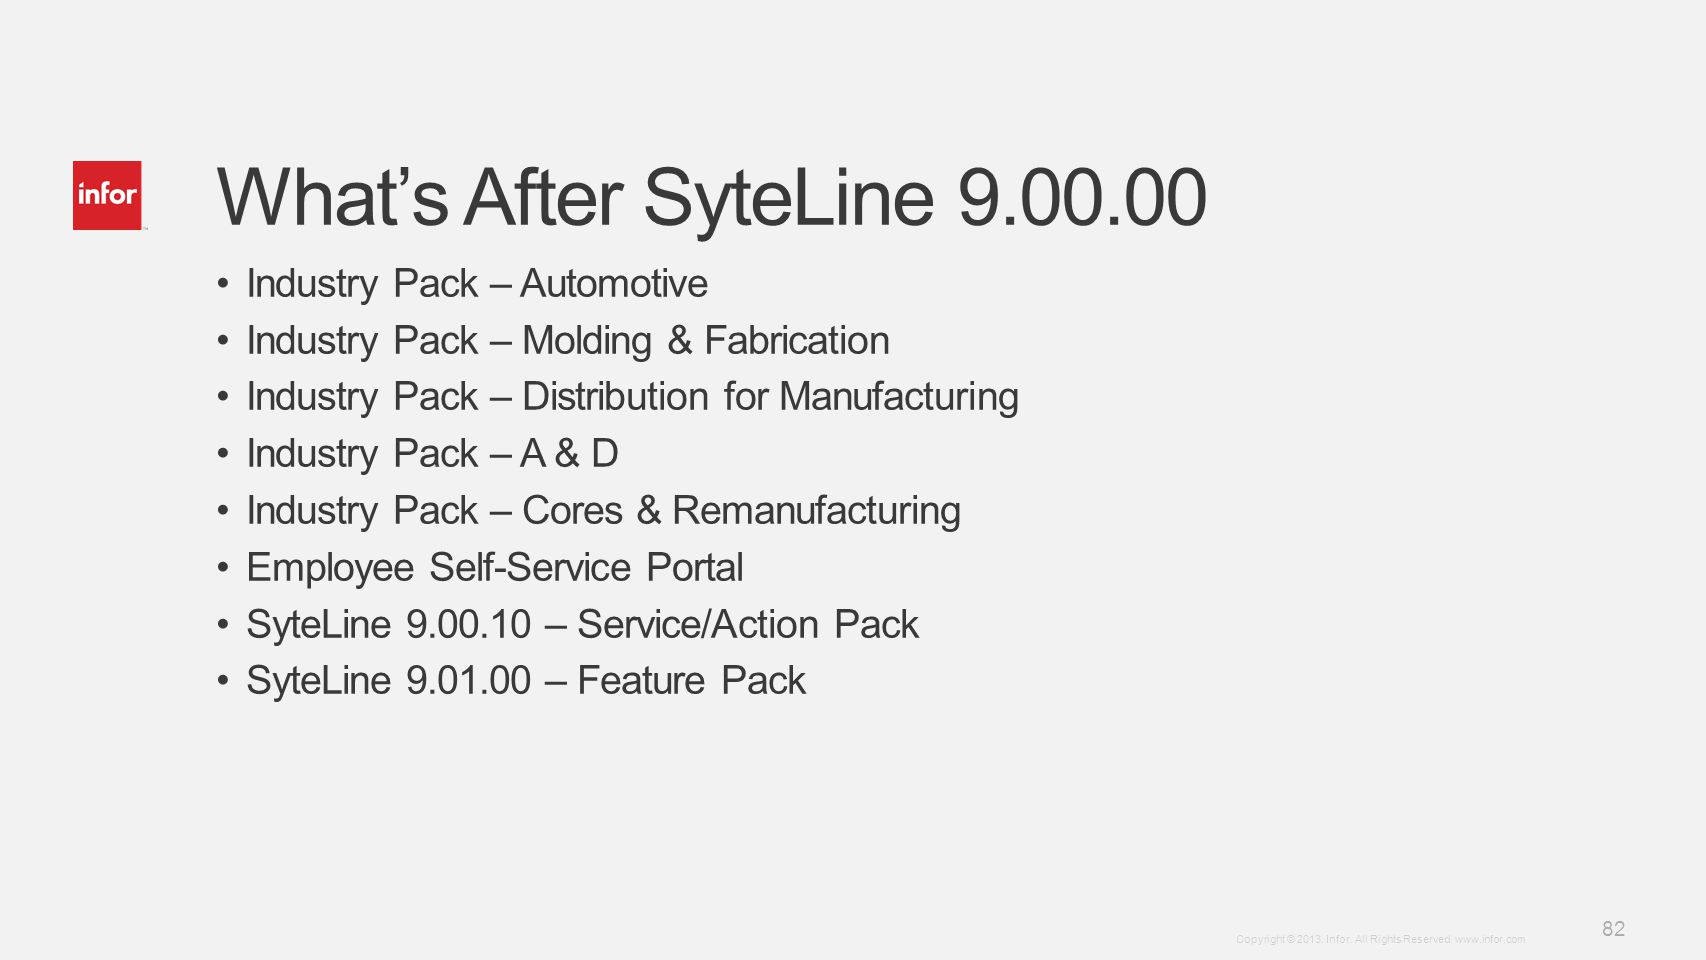 What's After SyteLine 9.00.00 Industry Pack – Automotive